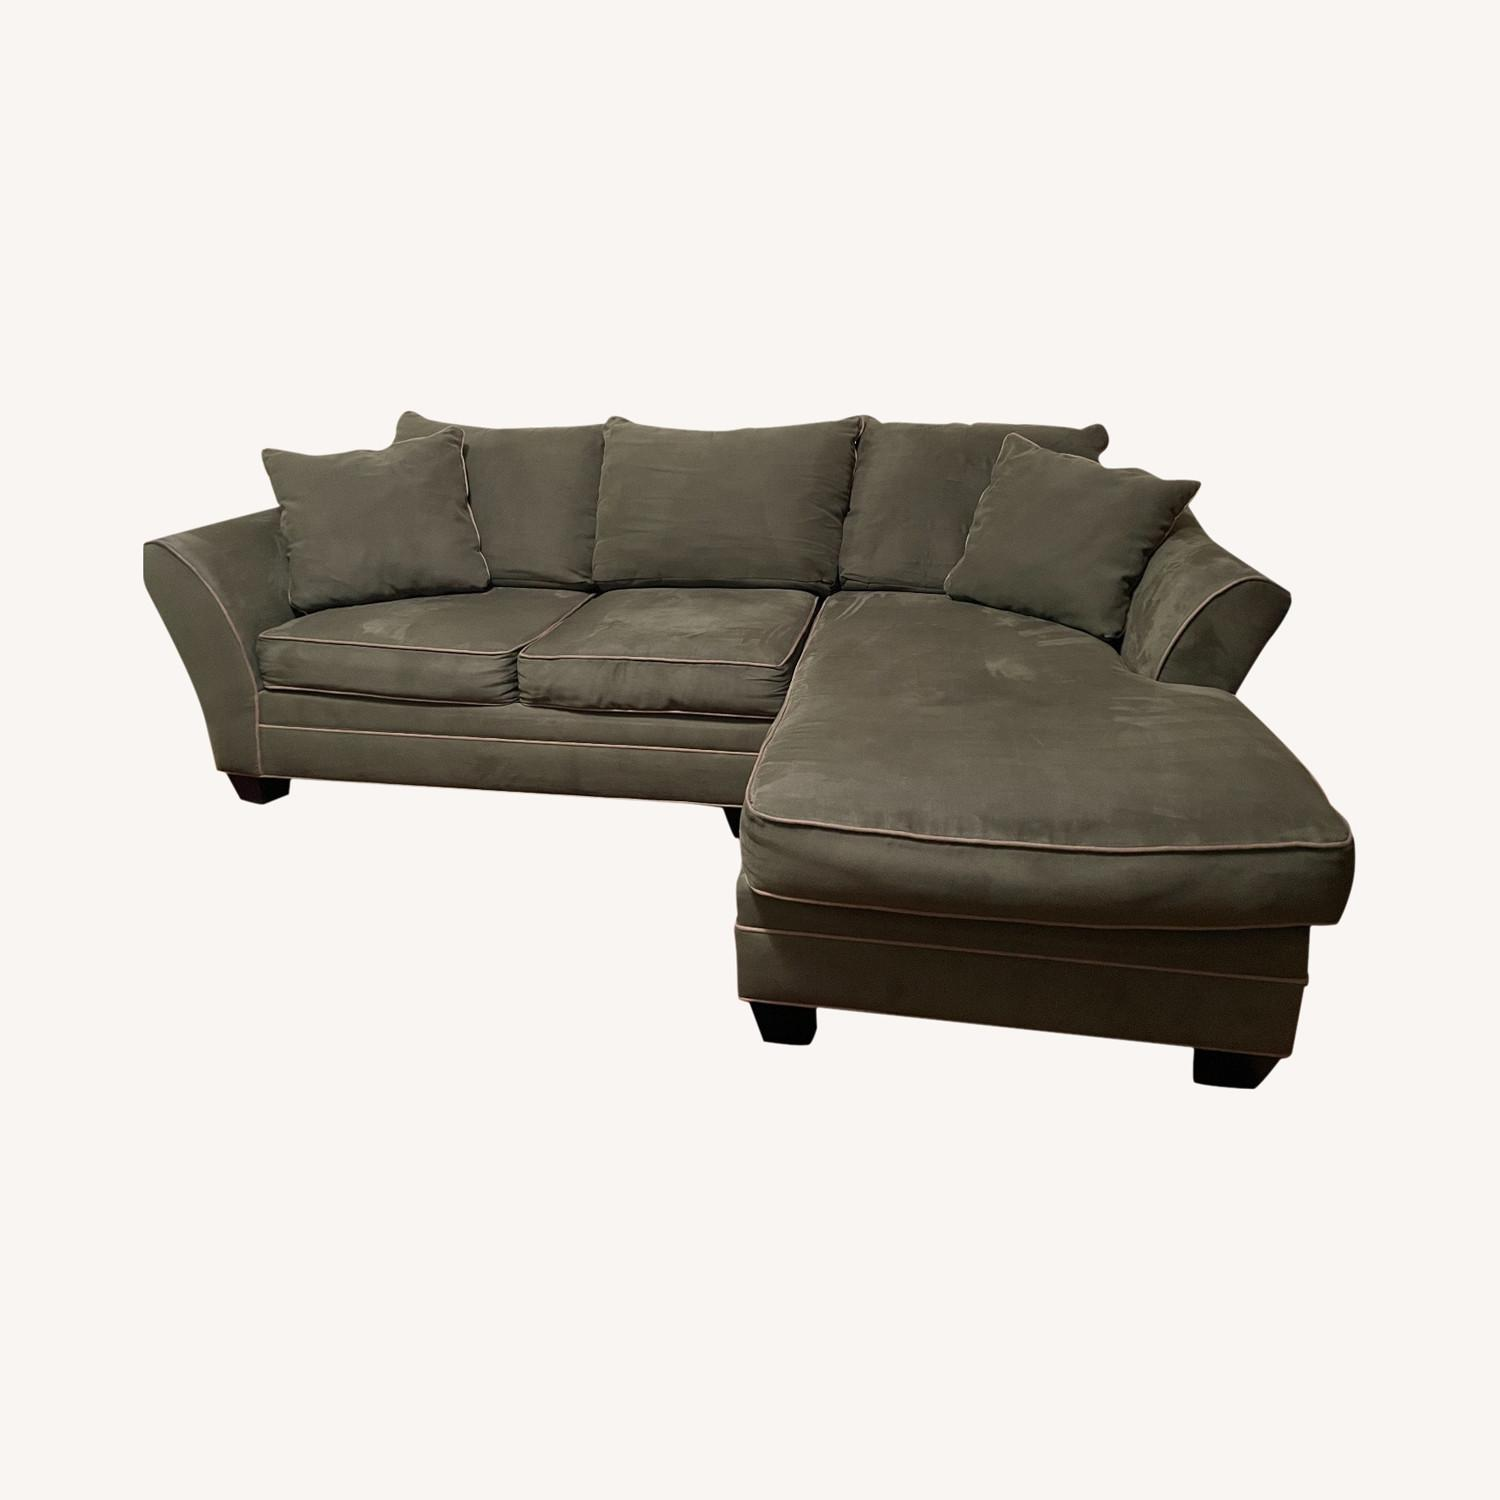 Raymour & Flanigan Foresthill 2-pc.  Sectional Sofa - image-0